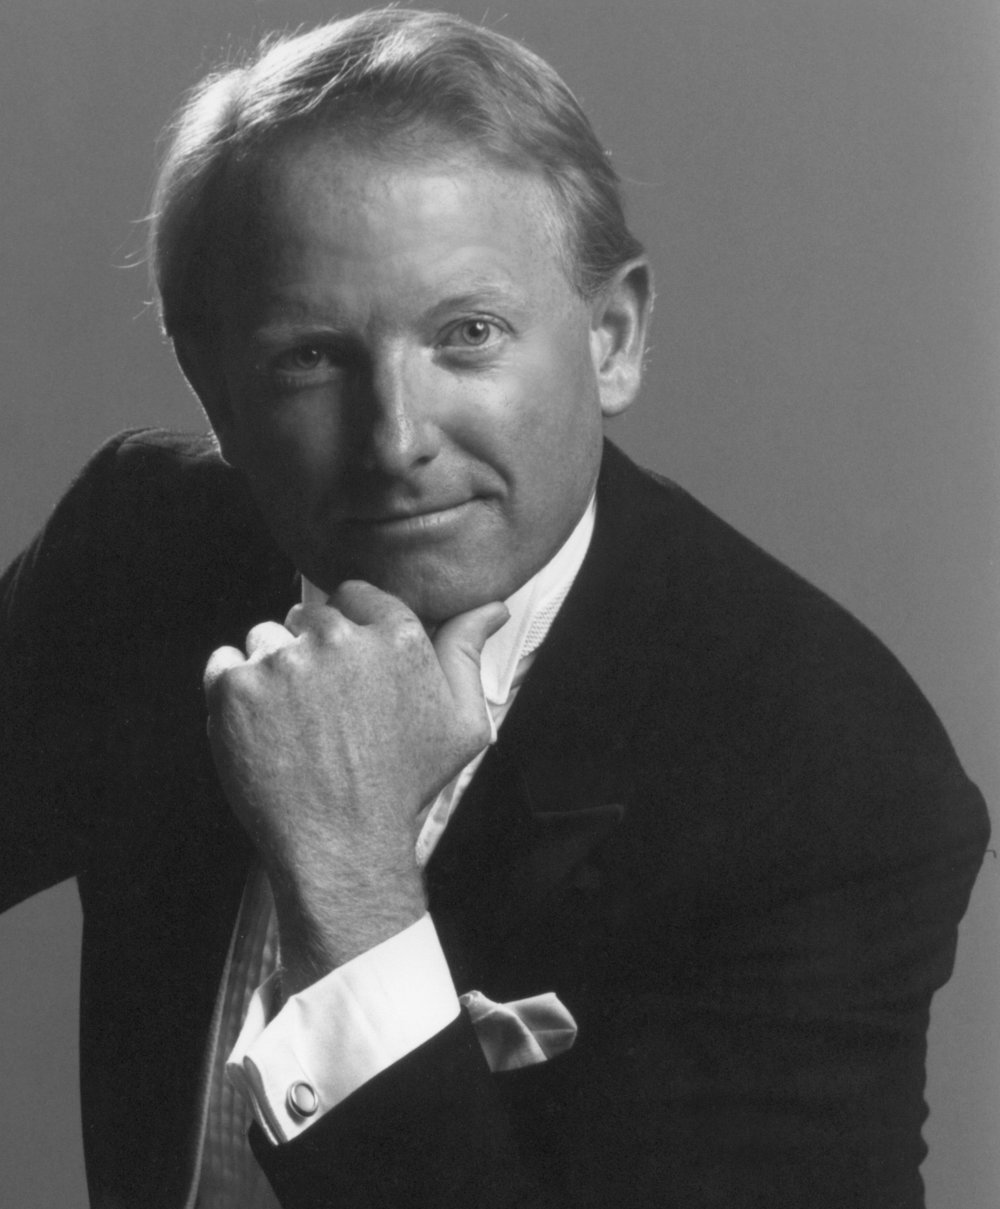 Daniel Kepl in 2003: Founding Artistic Director of the Santa Barbara Chamber Music Festival and conductor of the American Collegiate Symphony Orchestra